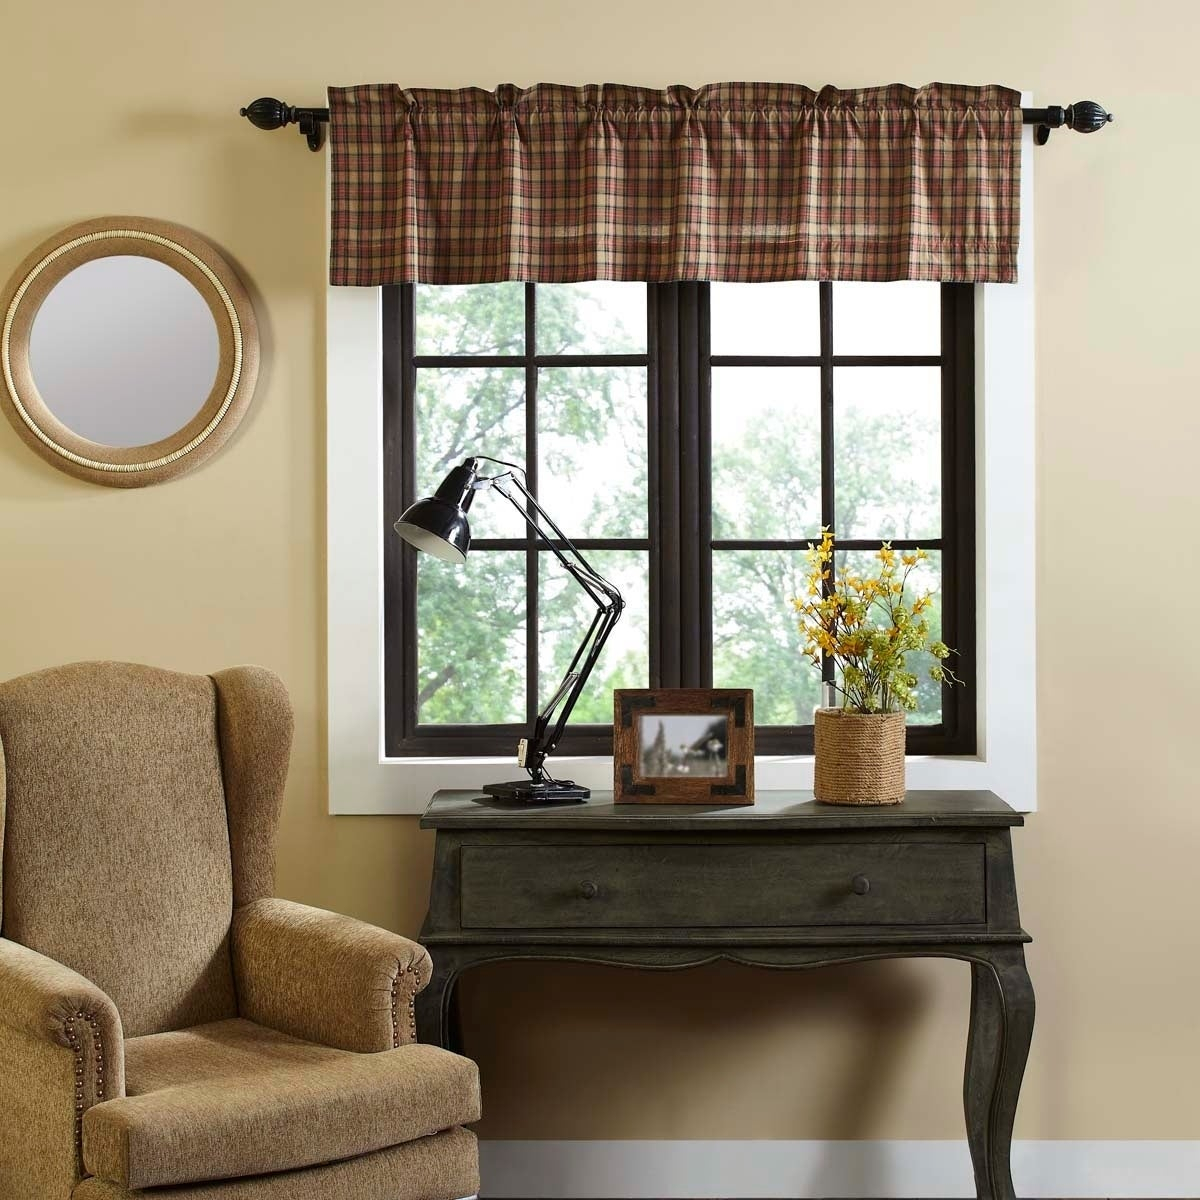 Tan Primitive Kitchen Curtains Vhc Crosswoods Valance Rod Pocket Cotton Plaid In Primitive Kitchen Curtains (View 18 of 20)